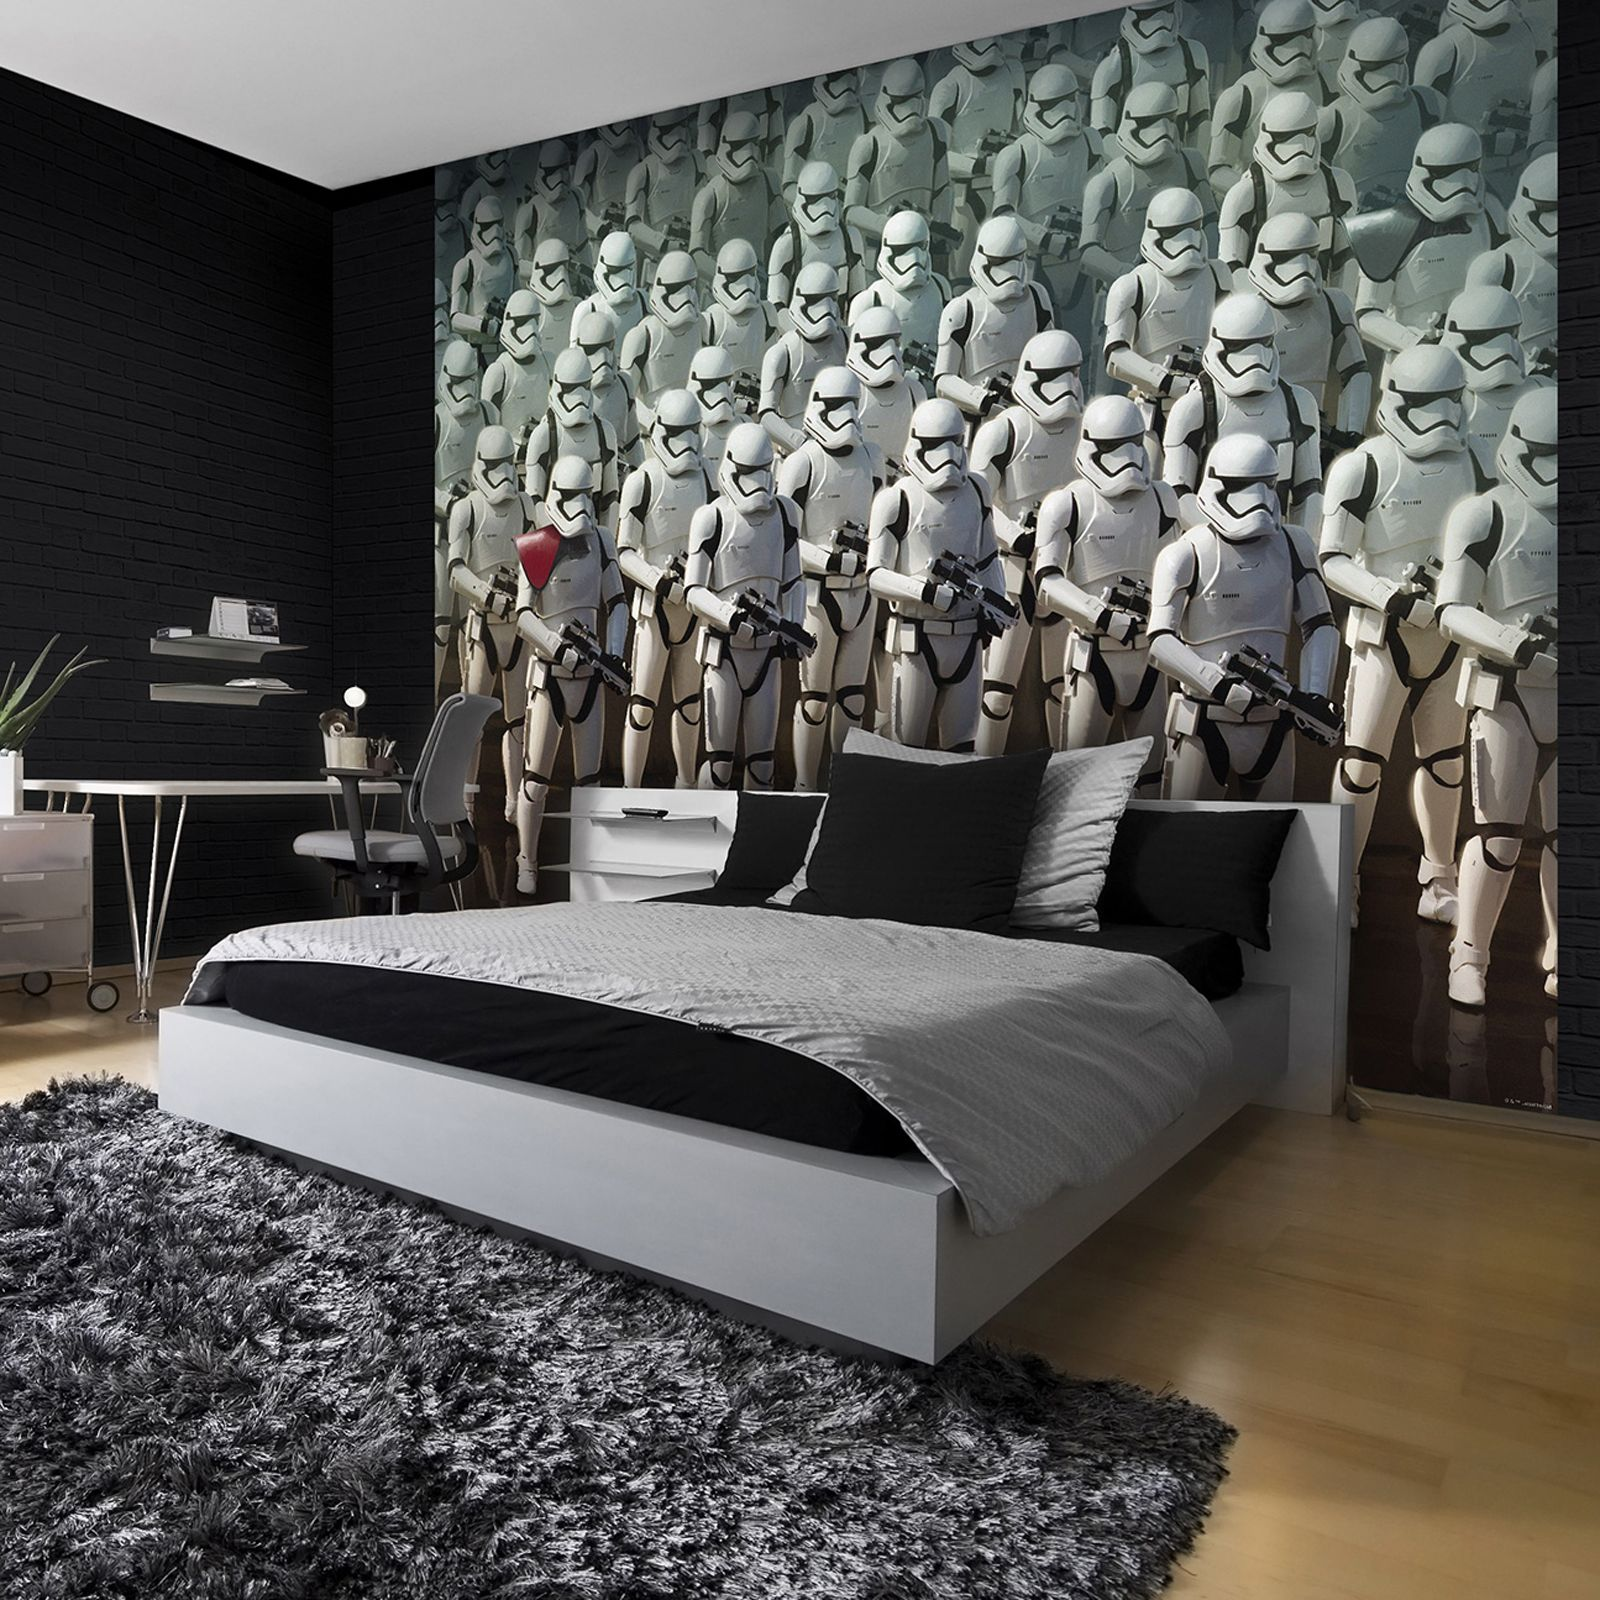 Star wars stormtrooper wall mural 254 x 184cm ebay for Boys room mural